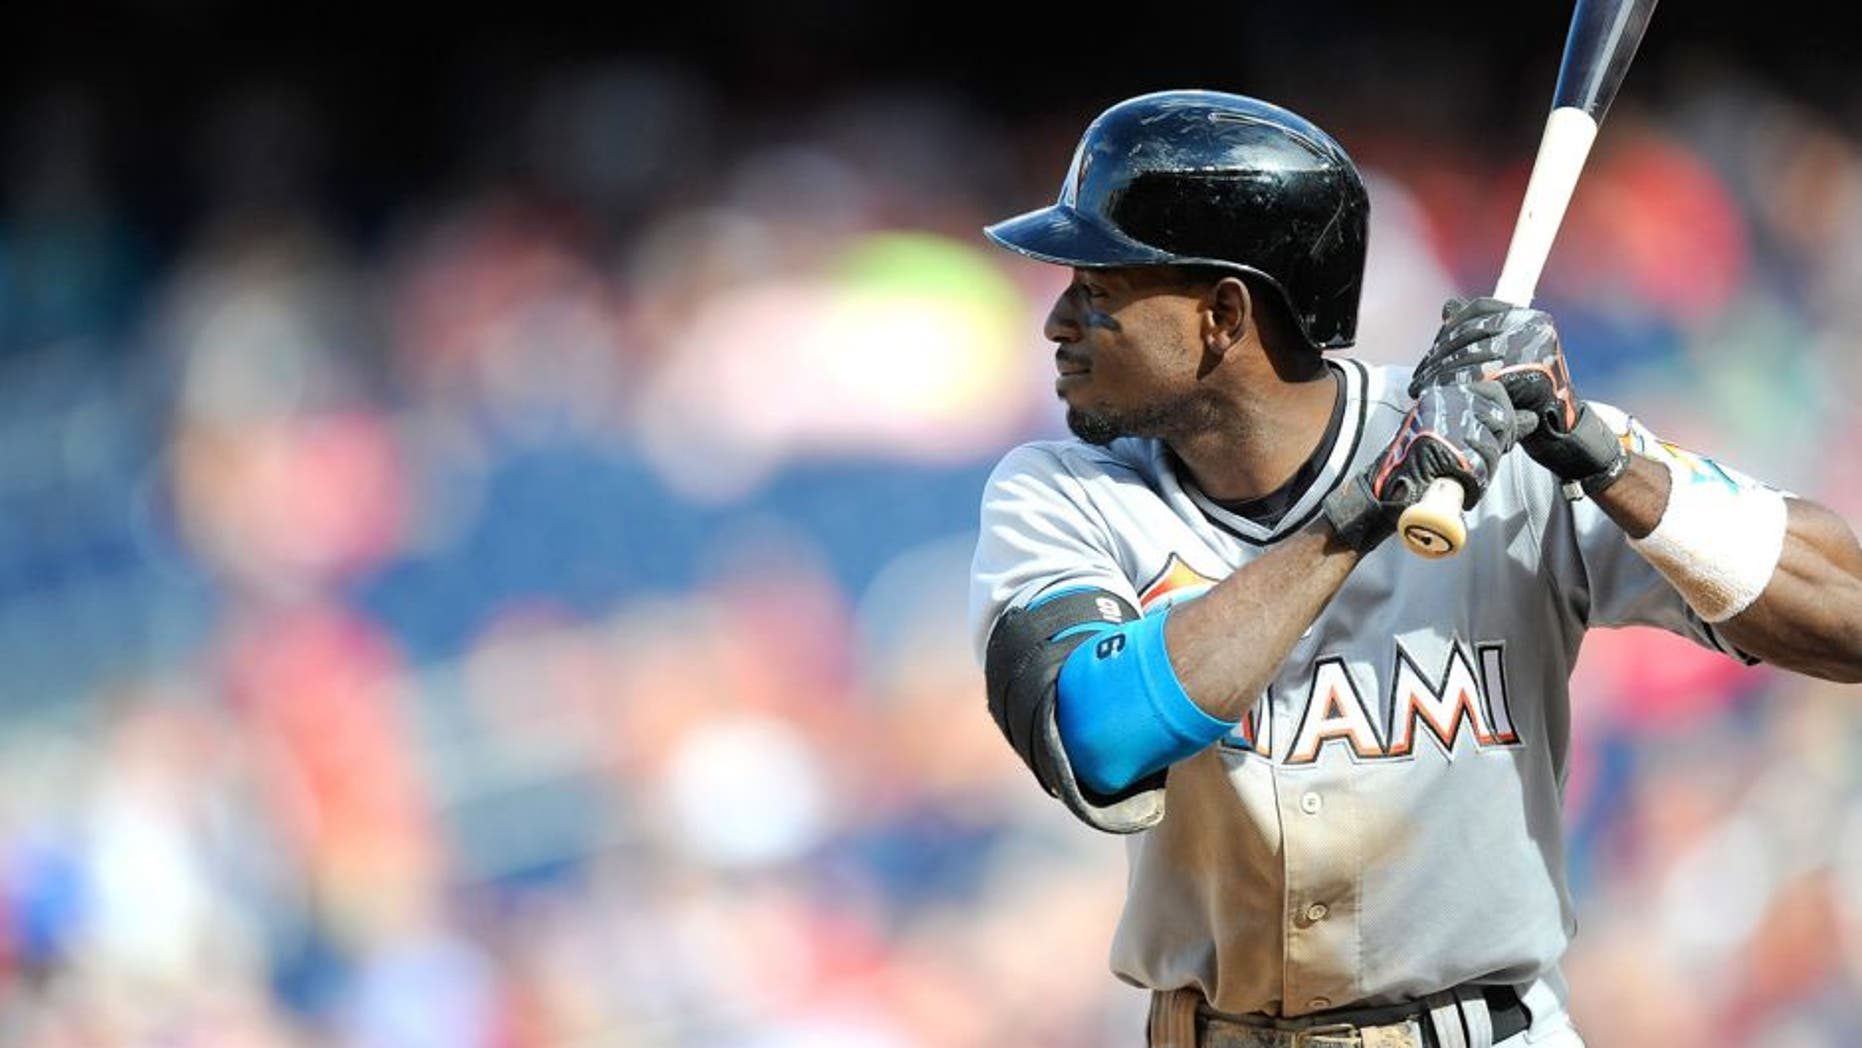 WASHINGTON, DC - SEPTEMBER 20: Dee Gordon #9 of the Miami Marlins bats against the Washington Nationals at Nationals Park on September 20, 2015 in Washington, DC. (Photo by G Fiume/Getty Images)